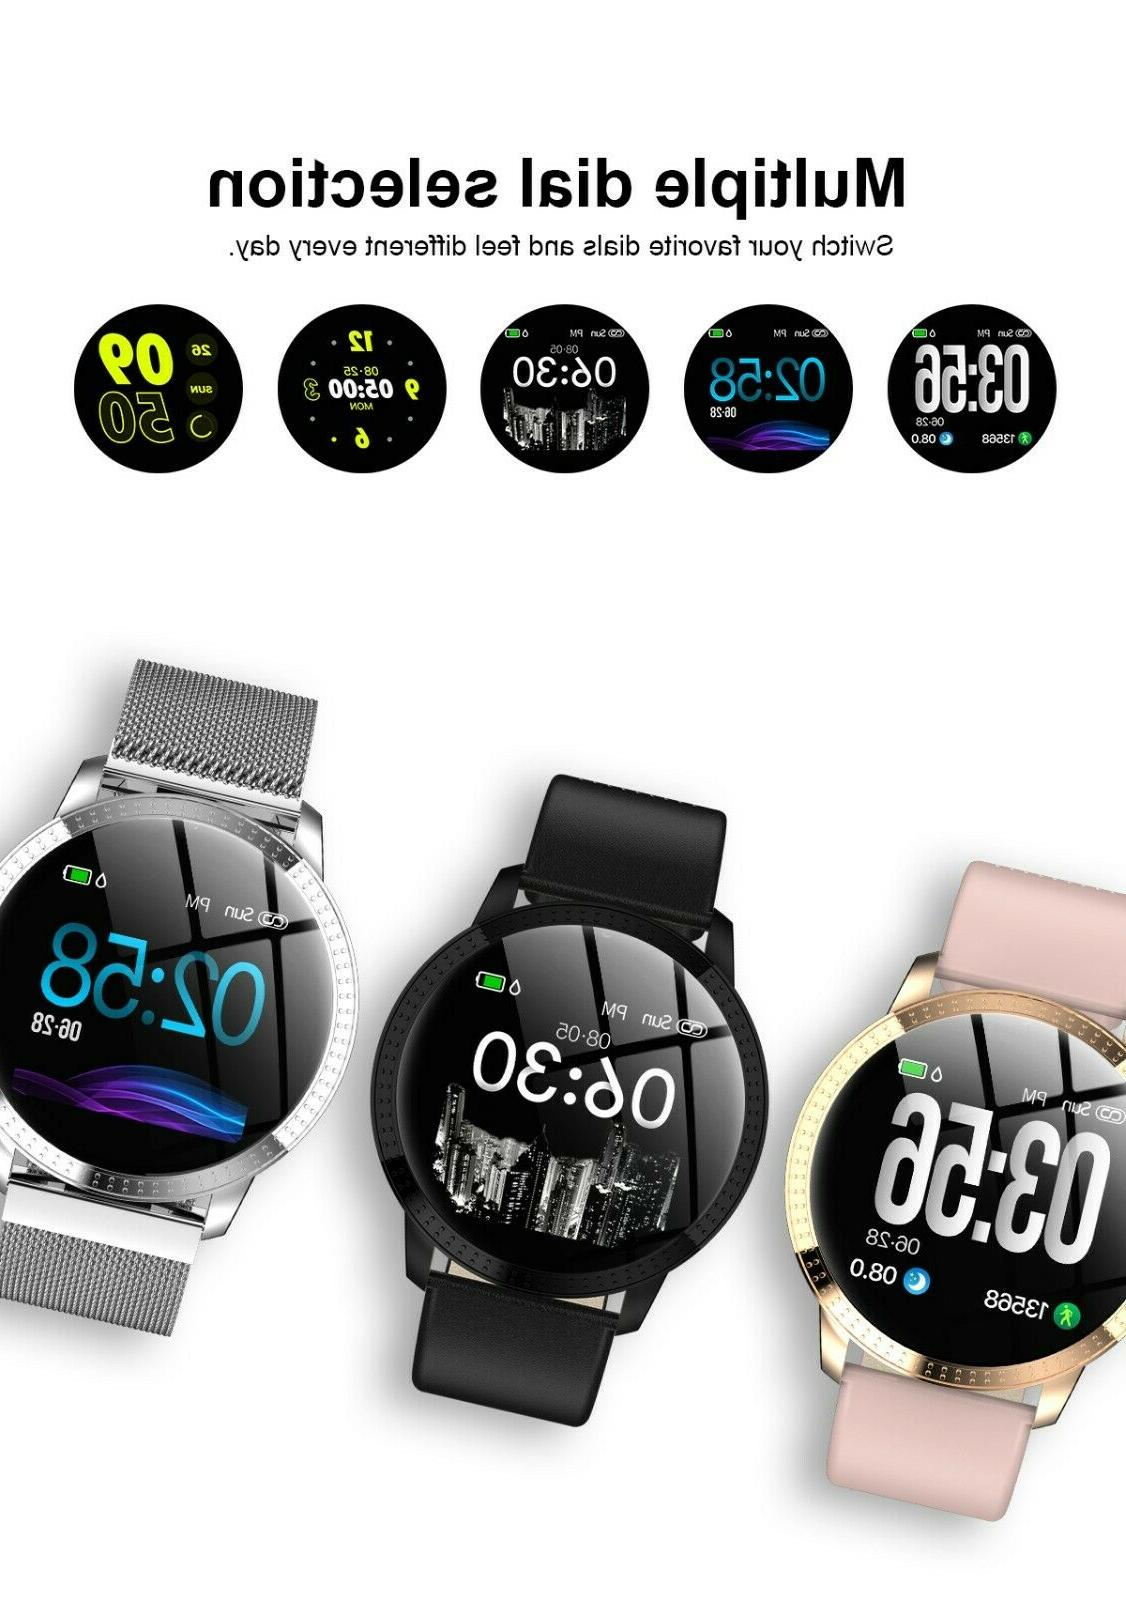 BLUETOOTH WATCH WITH CALORIE STEP COUNTER NOTIFICATIONS NO SIM